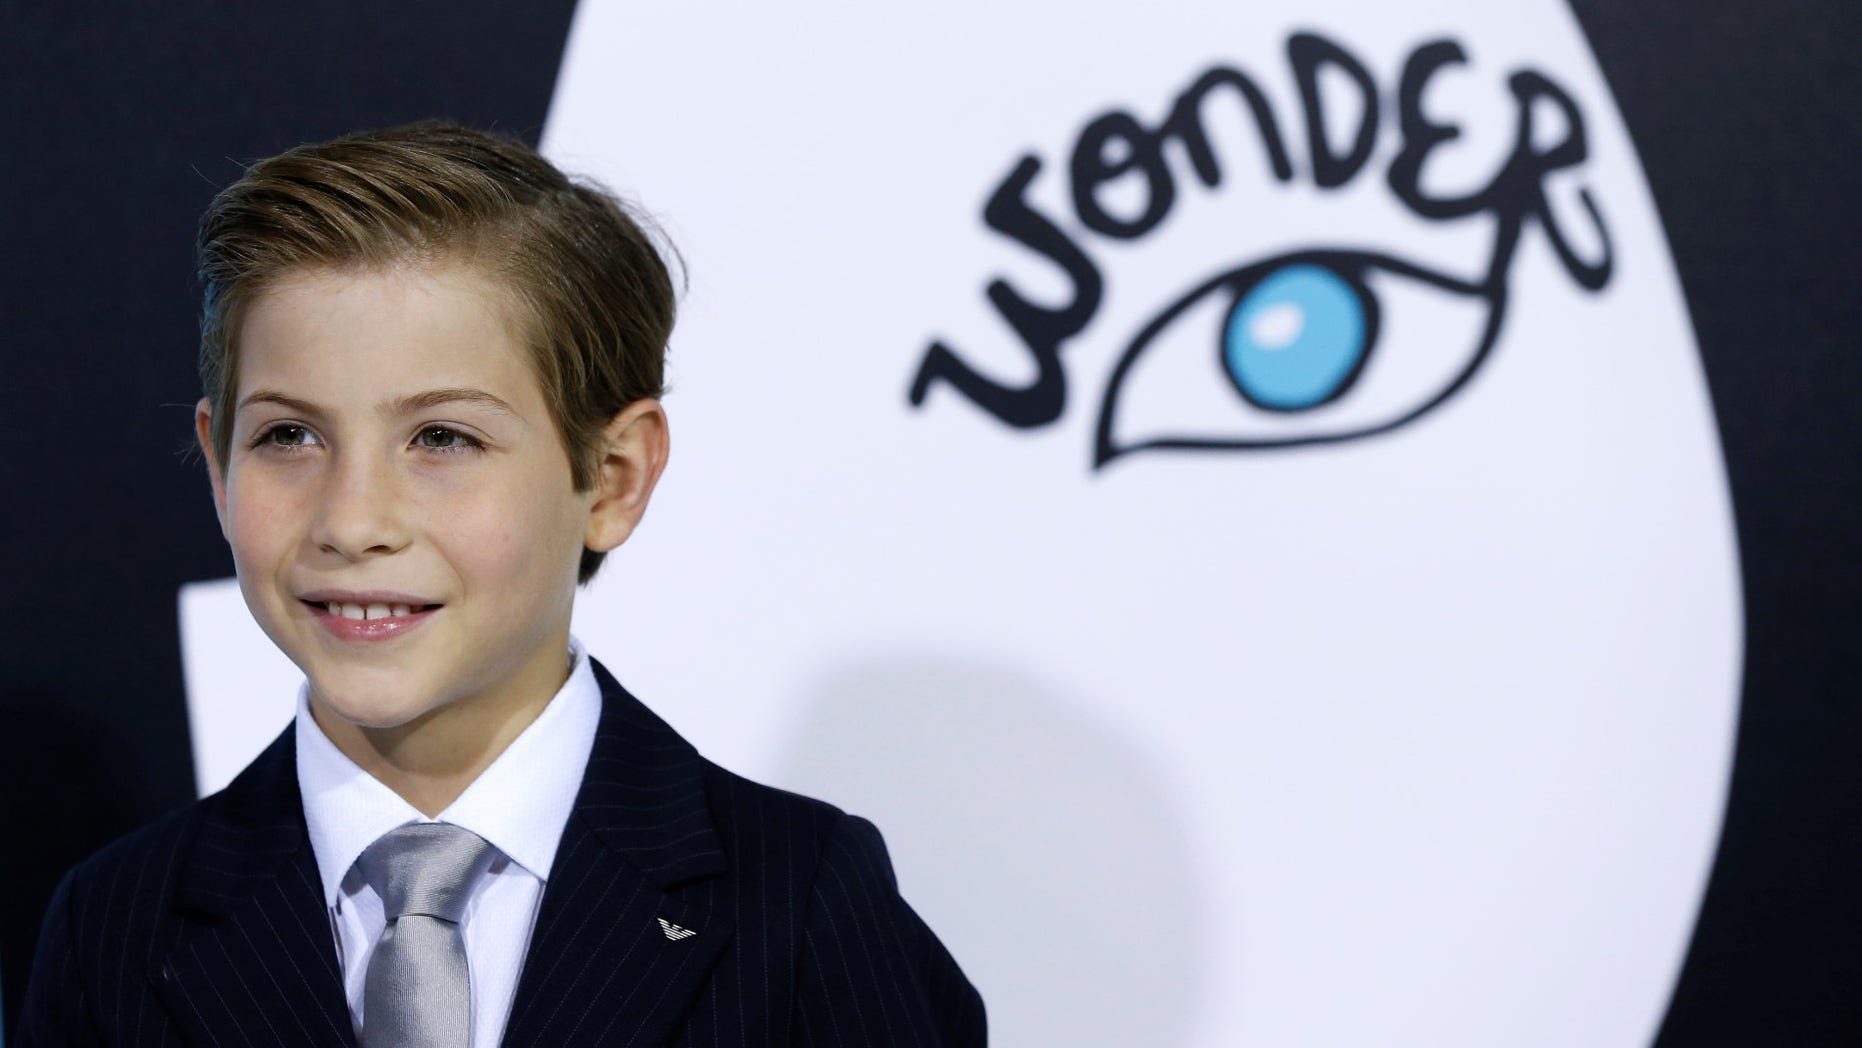 """Cast member Jacob Tremblay poses at the premiere for """"Wonder"""" in Los Angeles, California, U.S., November 14, 2017."""